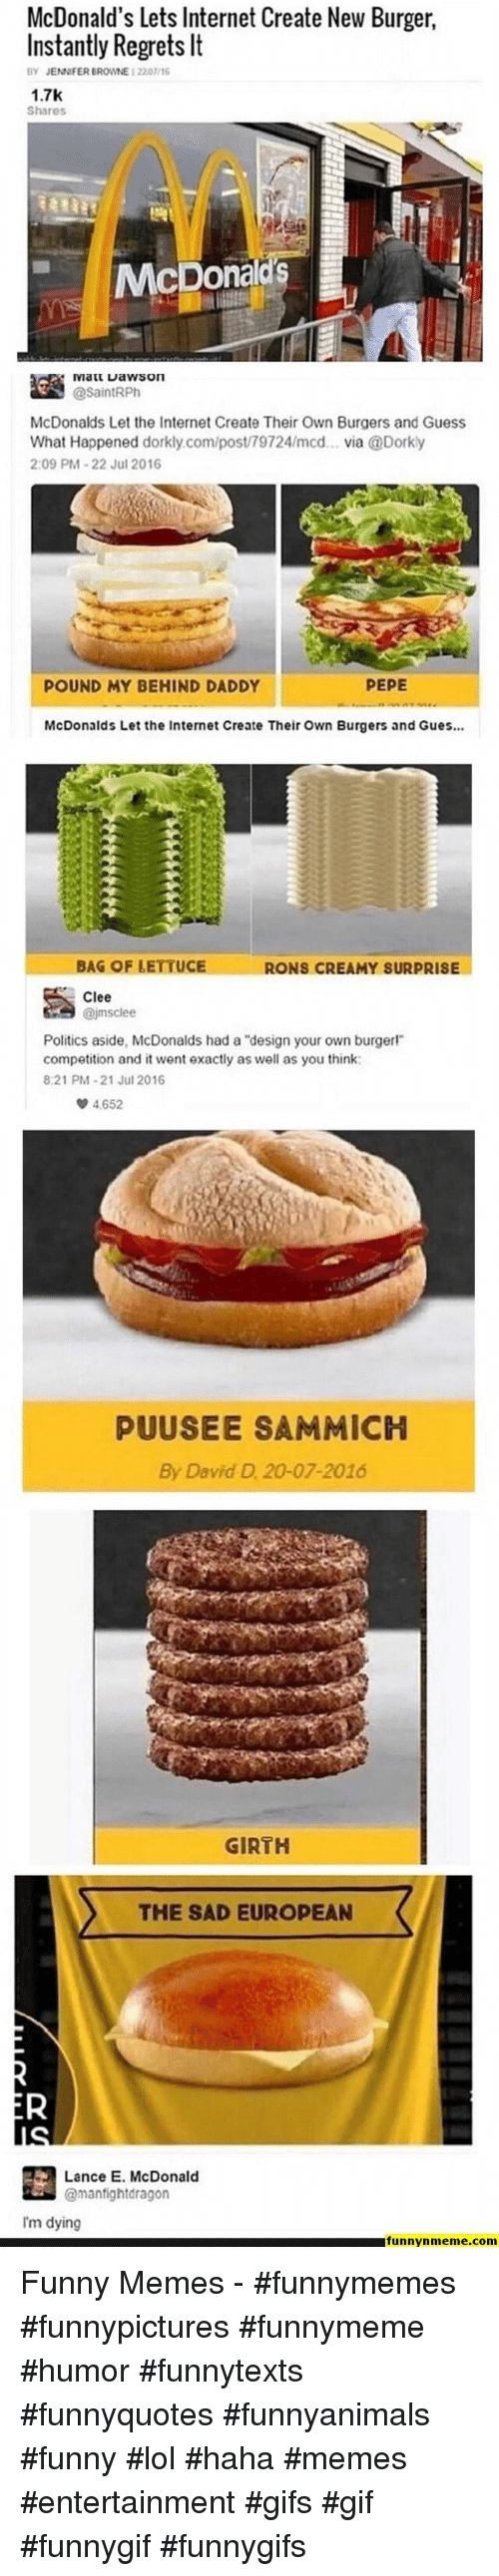 """Funny, Gif, and Internet: McDonald's Lets Internet Create New Burger  Instantly Regrets It  BY JENNFER BROWNE 12201/16  1.7K  Shares  McDona  逵 iviaarta wson  McDonalds Let the Internet Create Their Own Burgers and Guess  What Happened dorkly.com/post/79724/mcd... via @Dorky  2:09 PM-22 Jul 2016  POUND MY BEHIND DADDY  PEPE  McDonalds Let the Internet Create Their Own Burgers and Gues...  BAG OF LETTUCE  RONS CREAMY SURPRISE  Clee  Politics aside, McDonalds had a """"design your own burgerl""""  competition and it went exactly as well as you think  821 PM-21 Jul 2016  4652  PUUSEE SAMMICH  By David D 20-07-2016  GIRTH  THE SAD EUROPEAN  Lance E. McDonald  @manfightdragon  Im dying  funnynmeme.com Funny Memes - #funnymemes #funnypictures #funnymeme #humor #funnytexts #funnyquotes #funnyanimals #funny #lol #haha #memes #entertainment #gifs #gif #funnygif #funnygifs"""